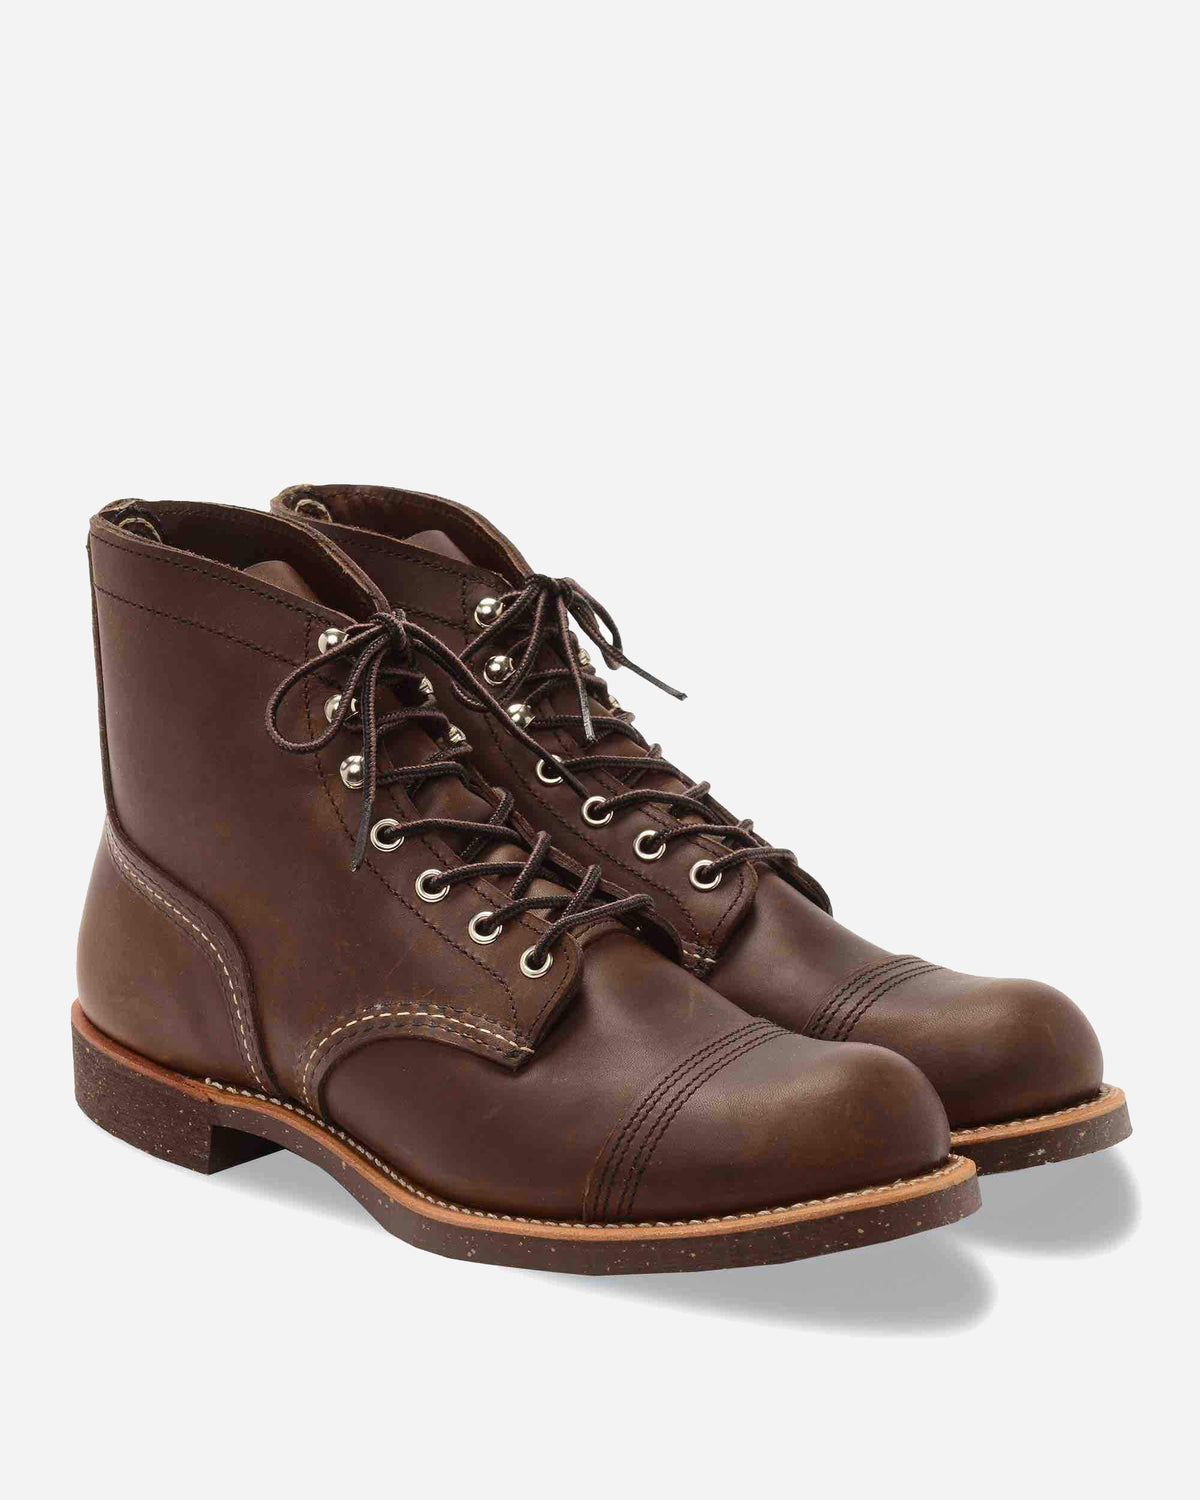 Red Wing Studio iron ranger men boot in amber